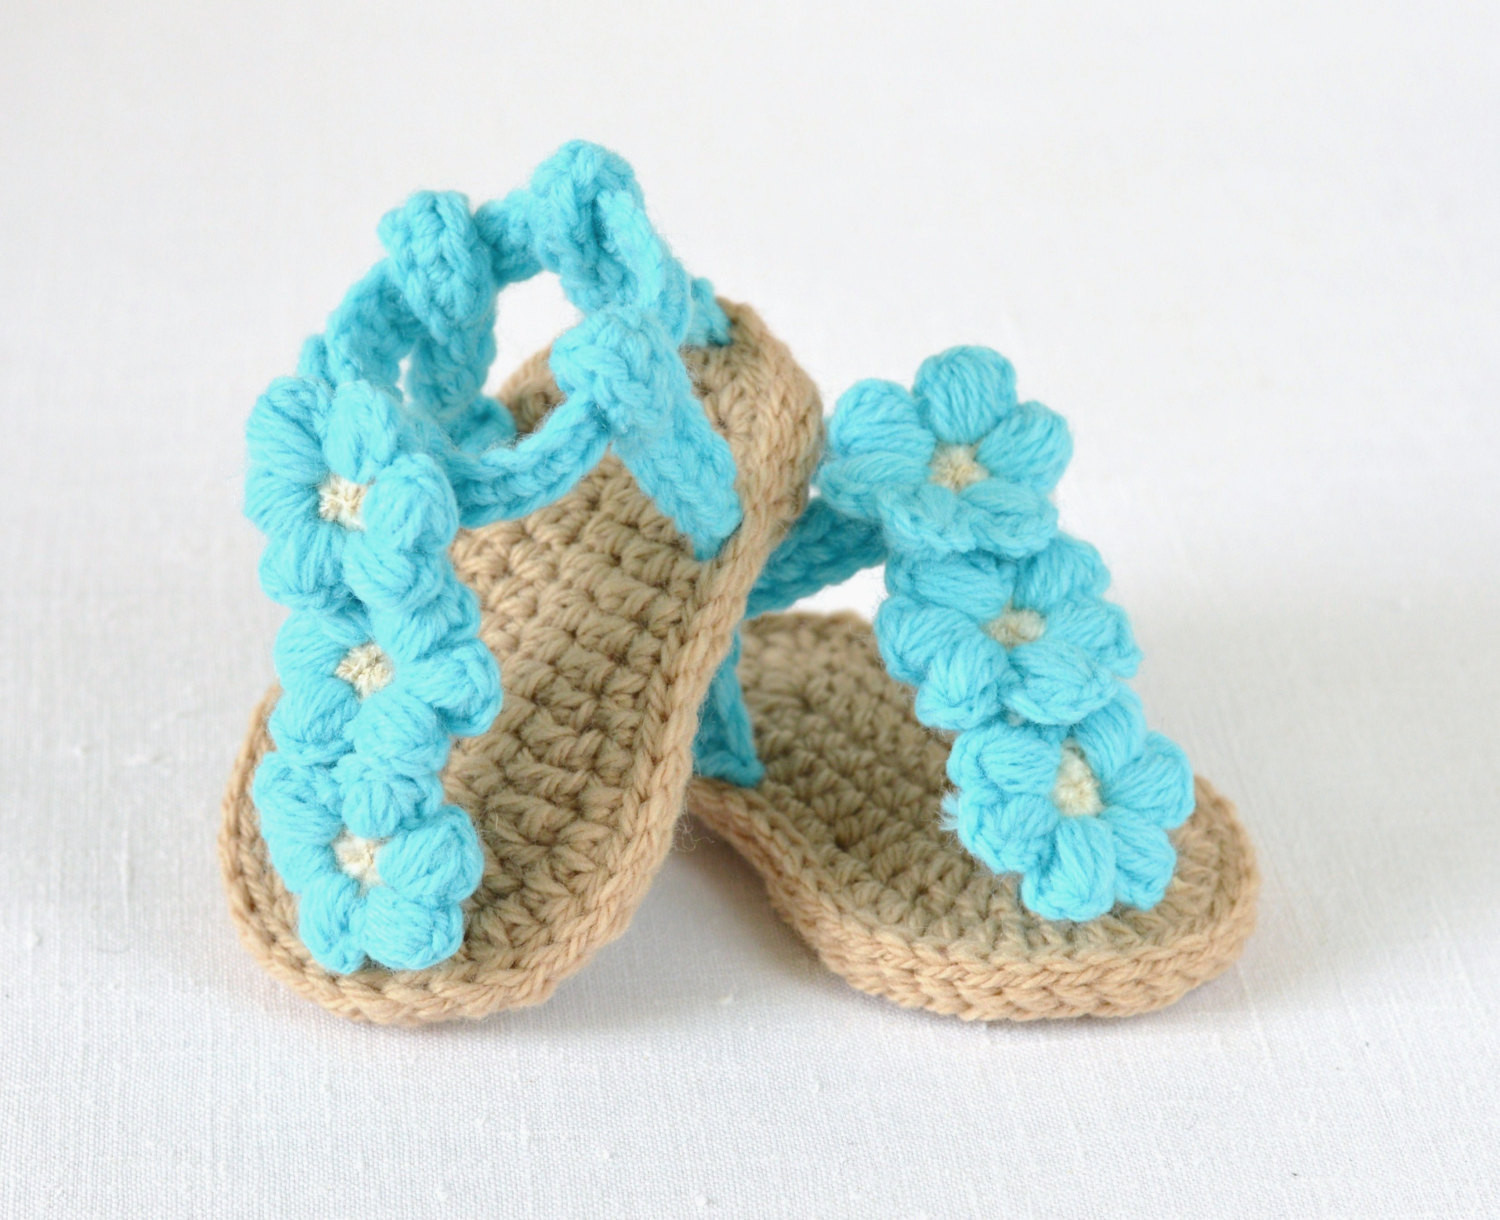 Crochet Baby Sandals Pattern New Crochet Pattern Baby Sandals with Little Puff by Of Perfect 43 Photos Crochet Baby Sandals Pattern